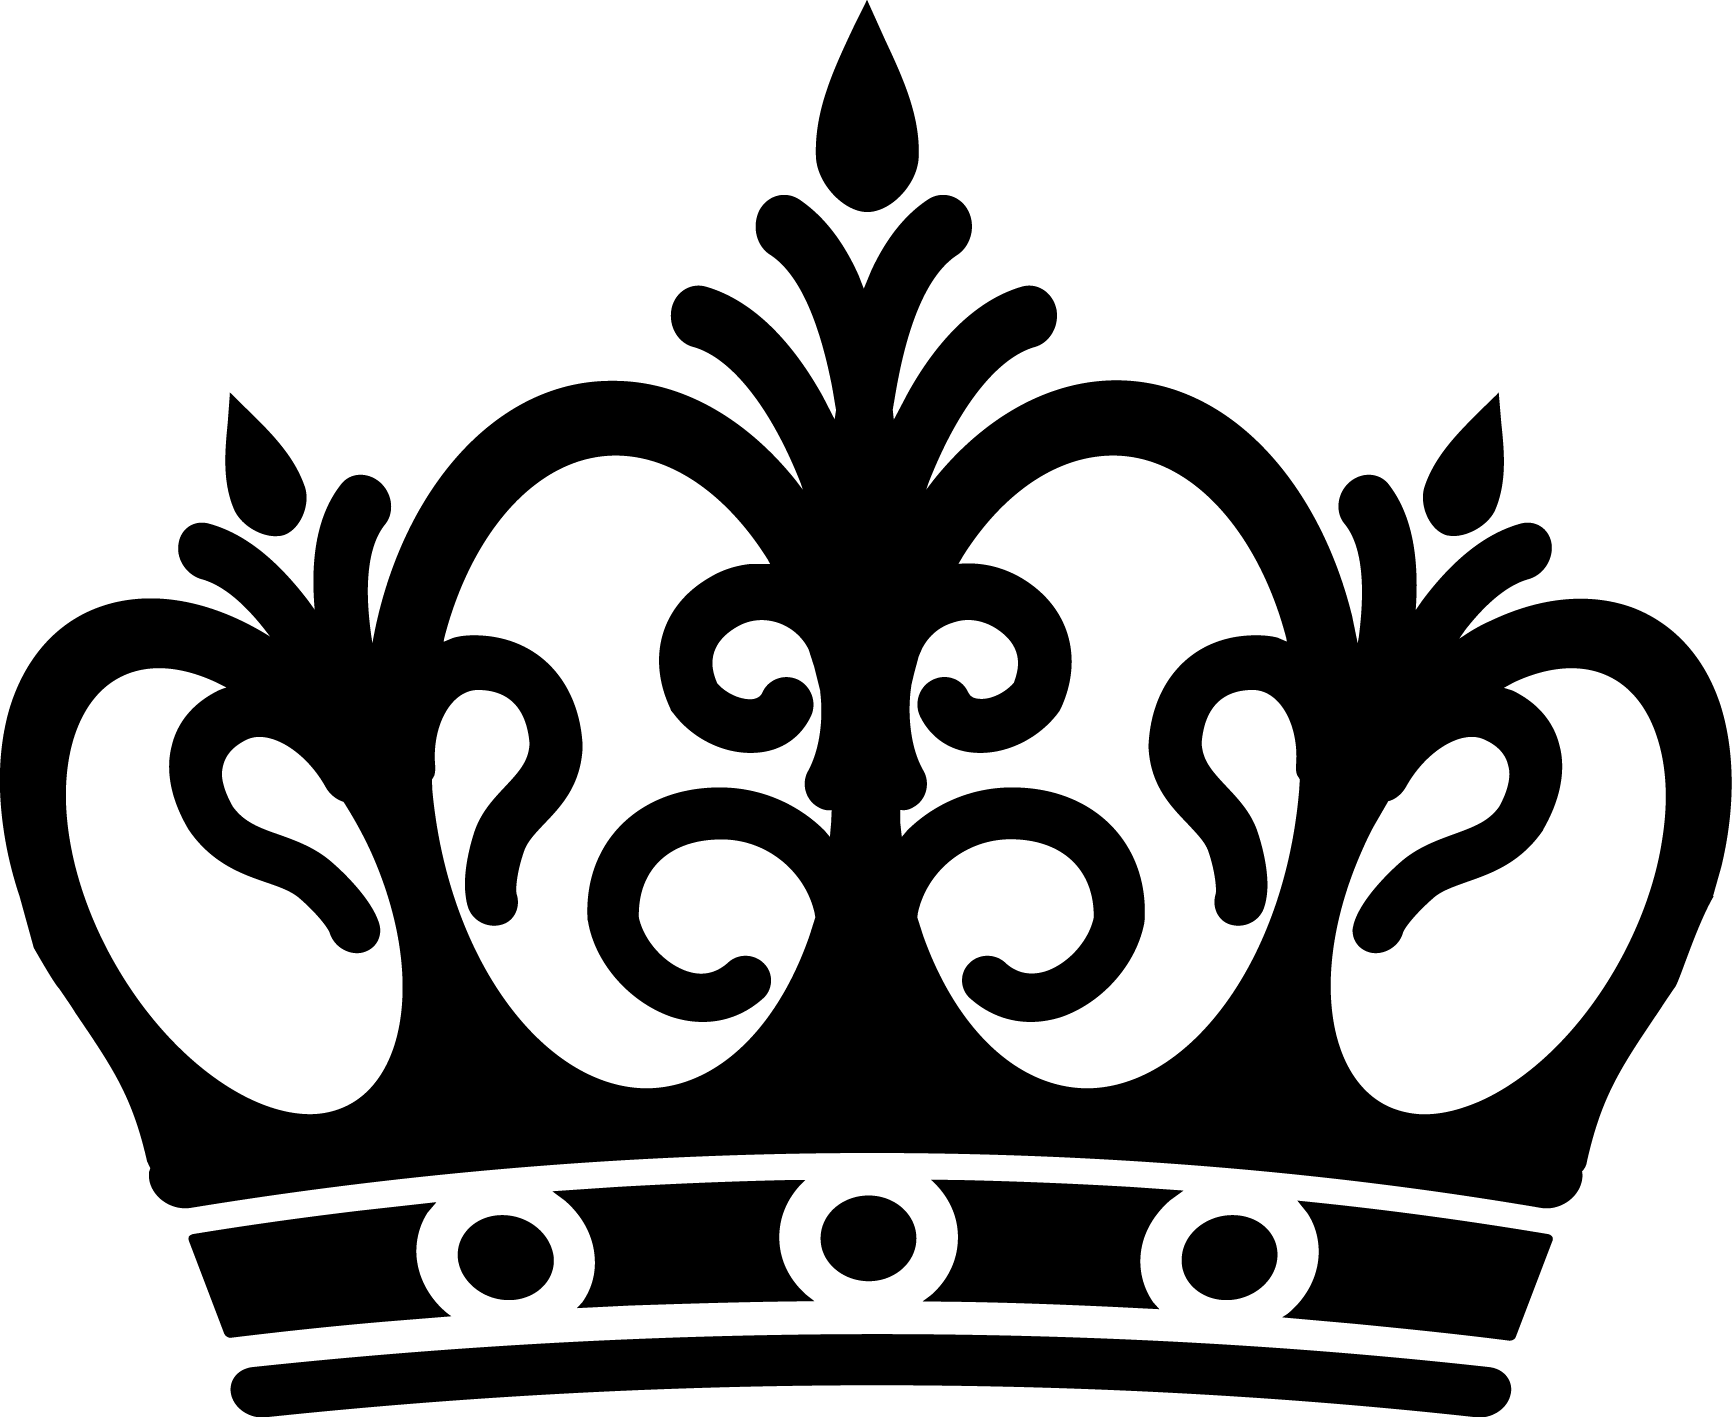 Crown drawing images at. Queen clipart king background